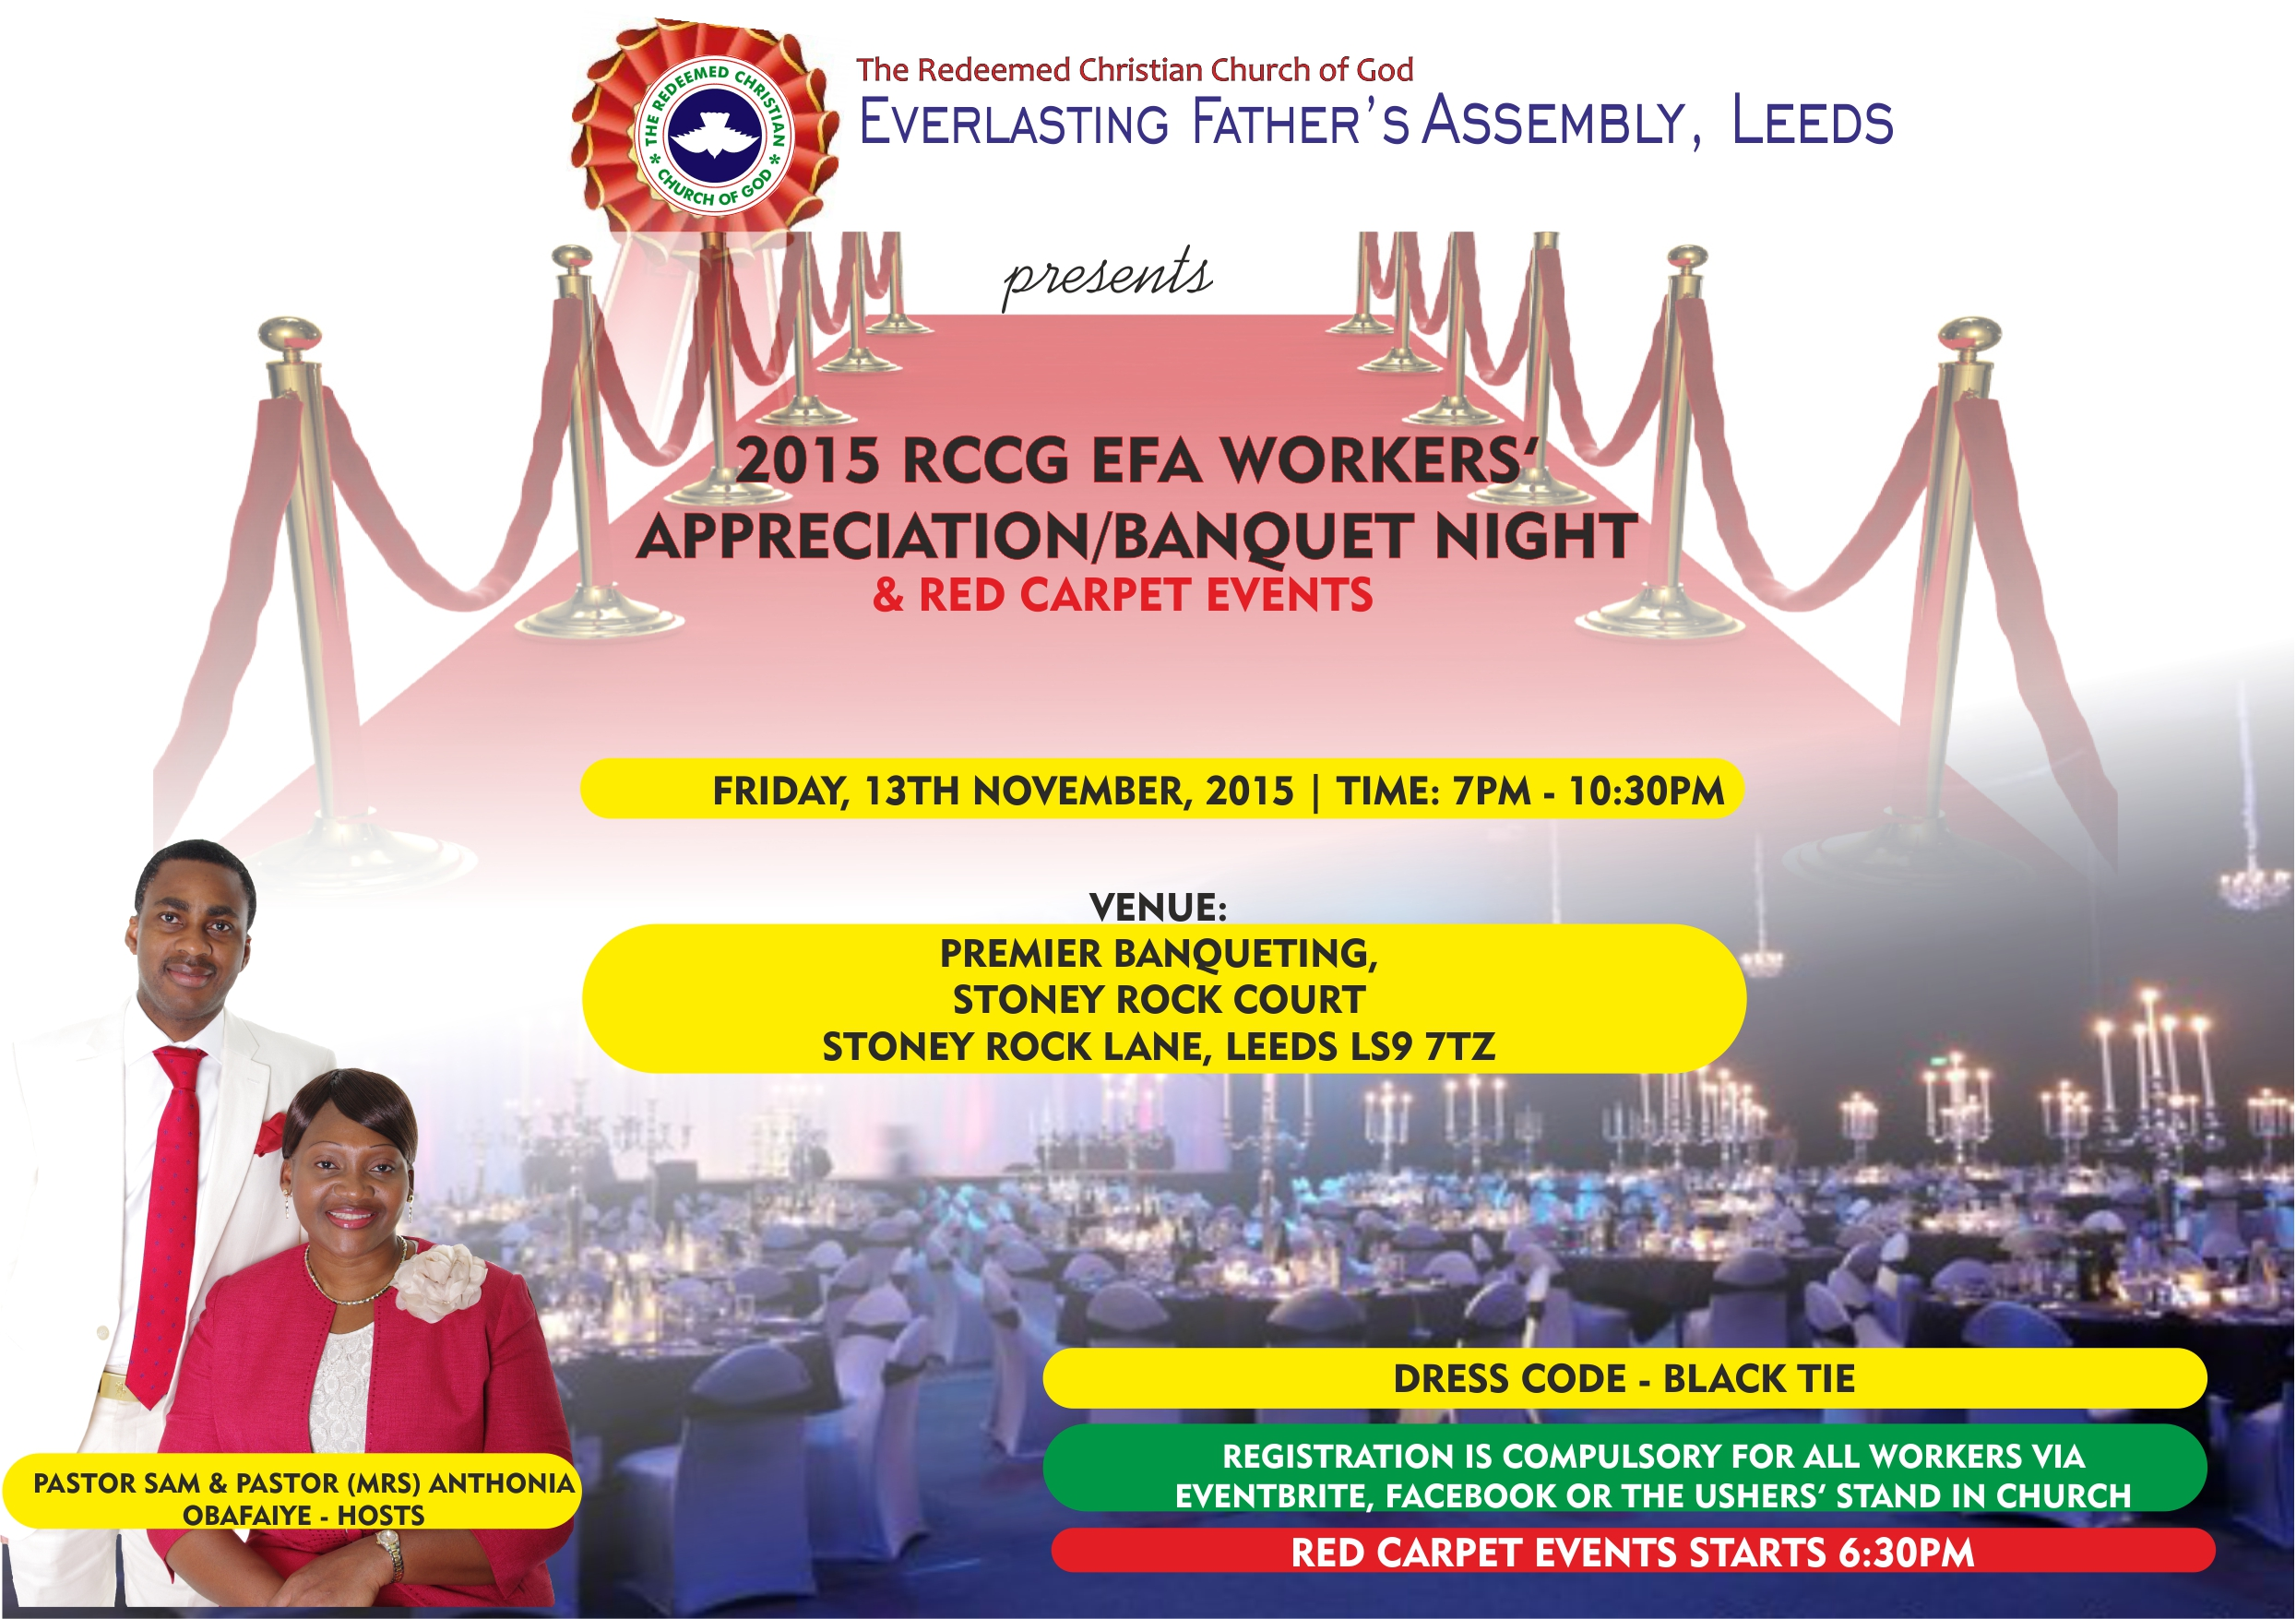 RCCG EFA Leeds 2015 Workers Appreciation/Banquet Night